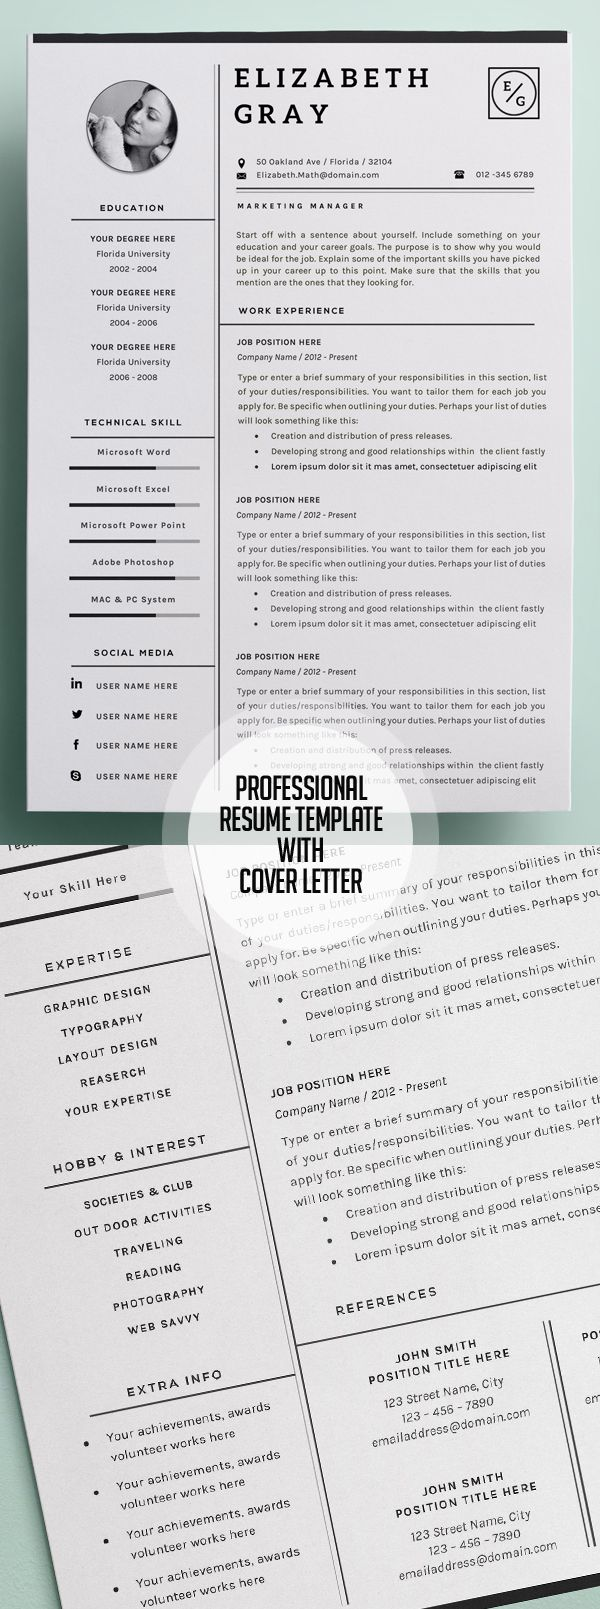 Picnictoimpeachus  Ravishing  Resume Ideas On Pinterest  Resume Resume Templates And  With Lovely Professional And Modern Resume Template With Page Cover Cvtemplate With Archaic College Resumes Also Create A Resume Online Free In Addition Free Resume Examples And Free Resume Online As Well As Resume With Accent Additionally Professional Summary Resume From Pinterestcom With Picnictoimpeachus  Lovely  Resume Ideas On Pinterest  Resume Resume Templates And  With Archaic Professional And Modern Resume Template With Page Cover Cvtemplate And Ravishing College Resumes Also Create A Resume Online Free In Addition Free Resume Examples From Pinterestcom